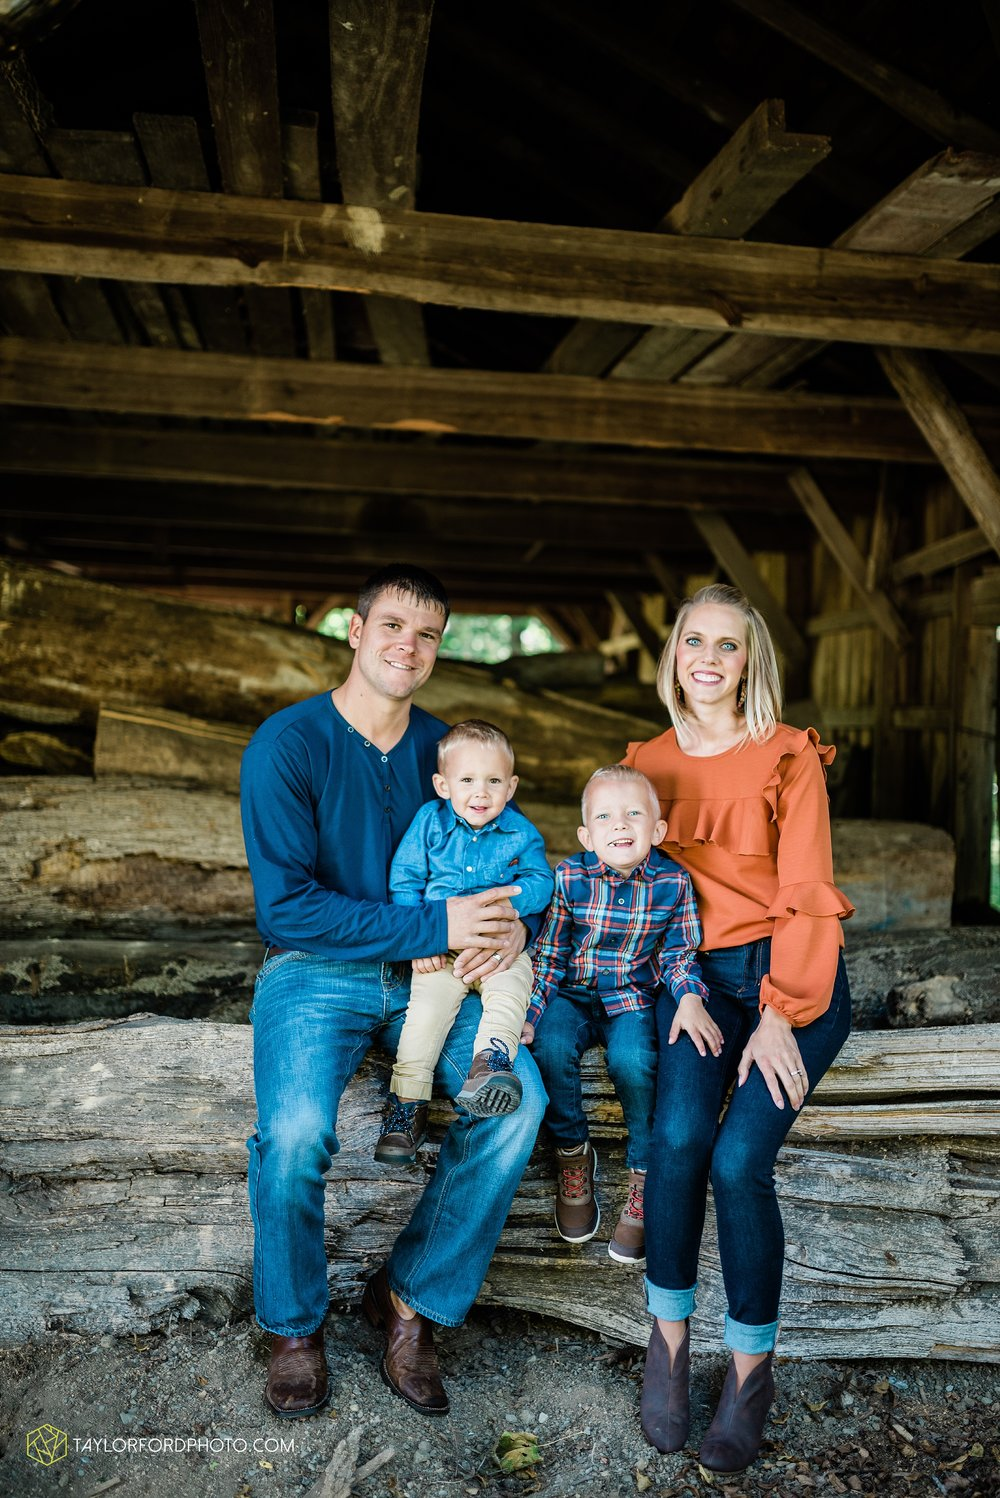 delphos-fort-jennings-ohio-at-home-lifestyle-farm-extended-family-photographer-taylor-ford-photography_0736.jpg